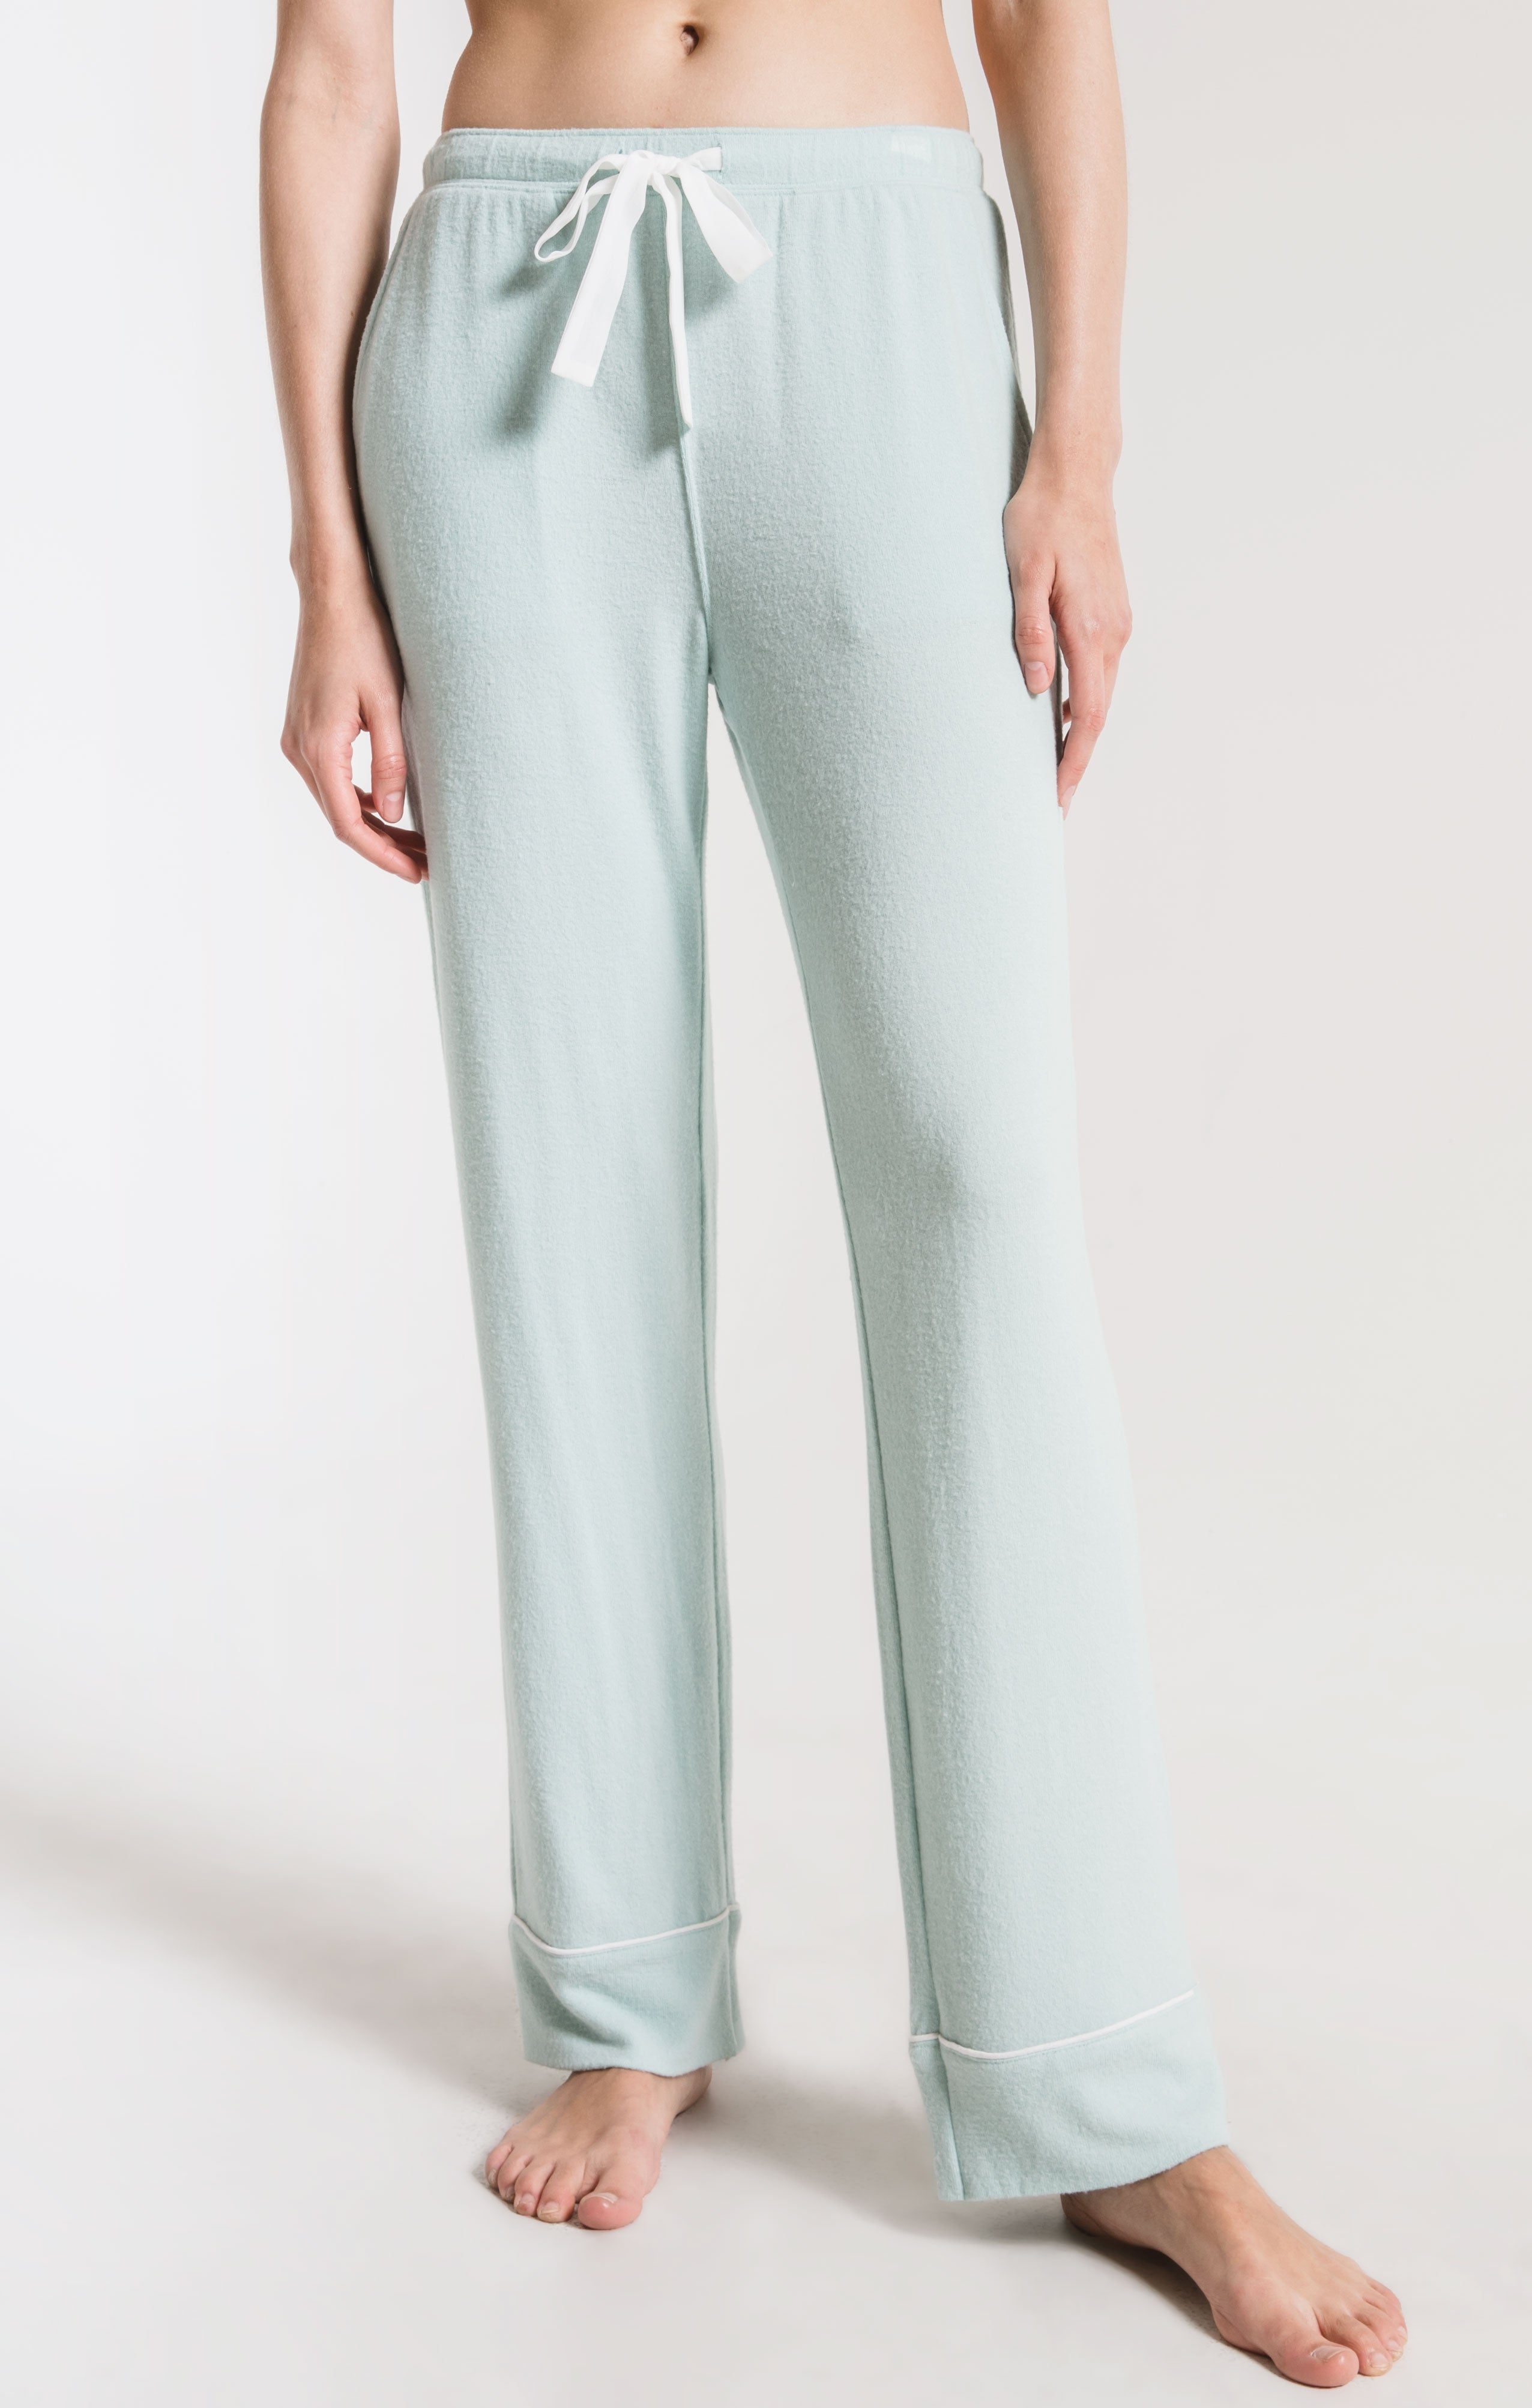 Lounge The Luxe Menswear Pajama Pant Blue Haze